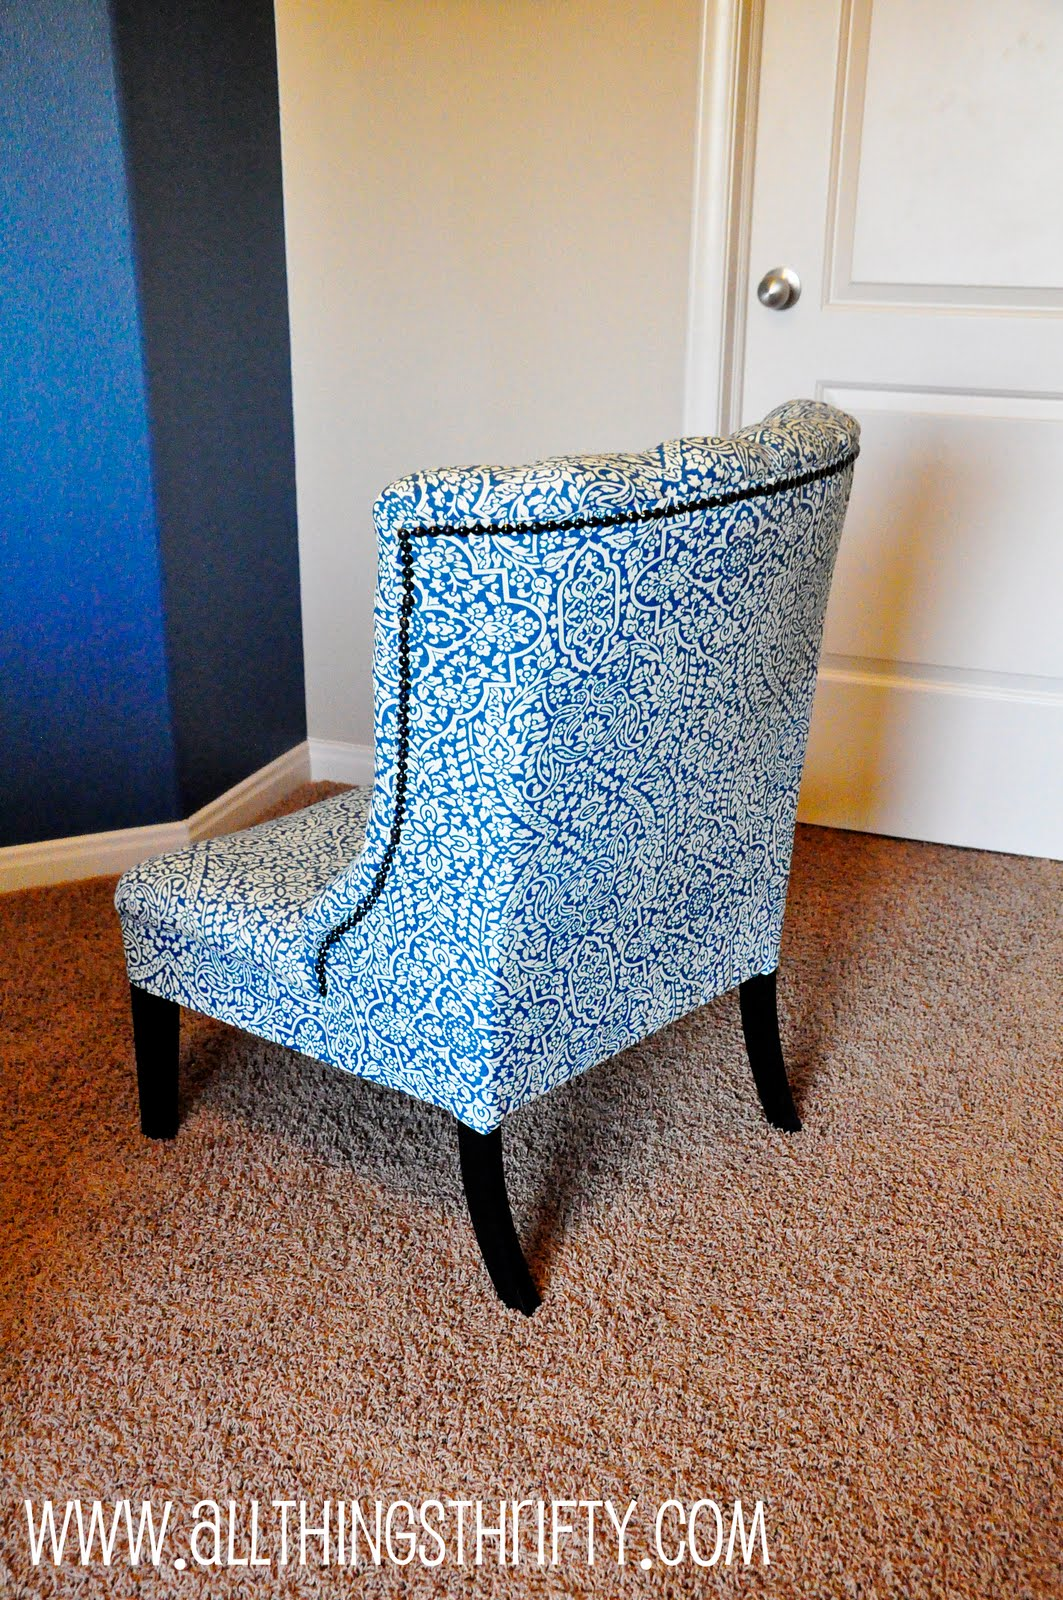 Where To Get Chairs Reupholstered High Seat For The Elderly United States Reupholstering Of Pink Chair Complete